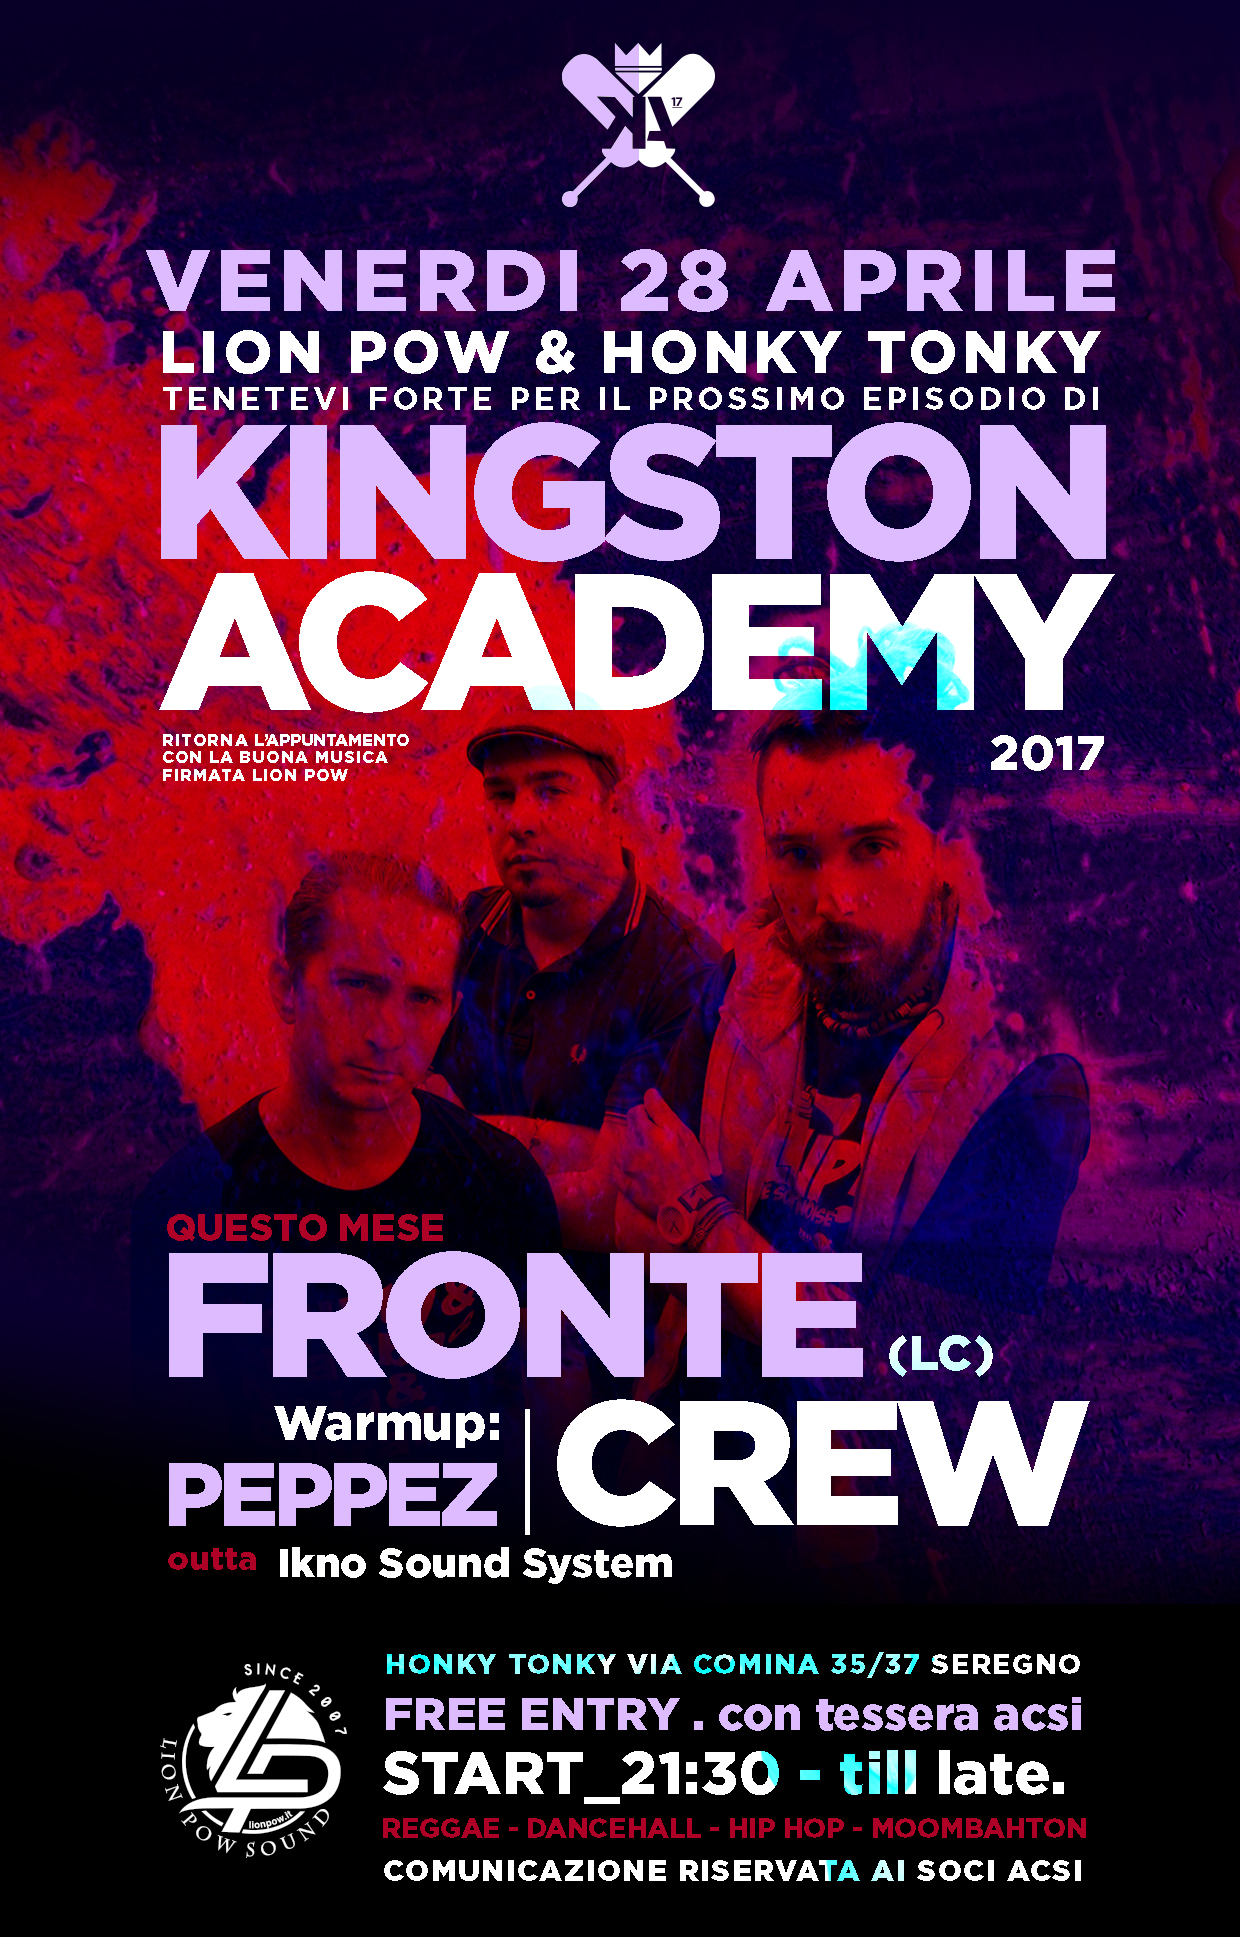 Kingston Academy 28th april Fronte Crew